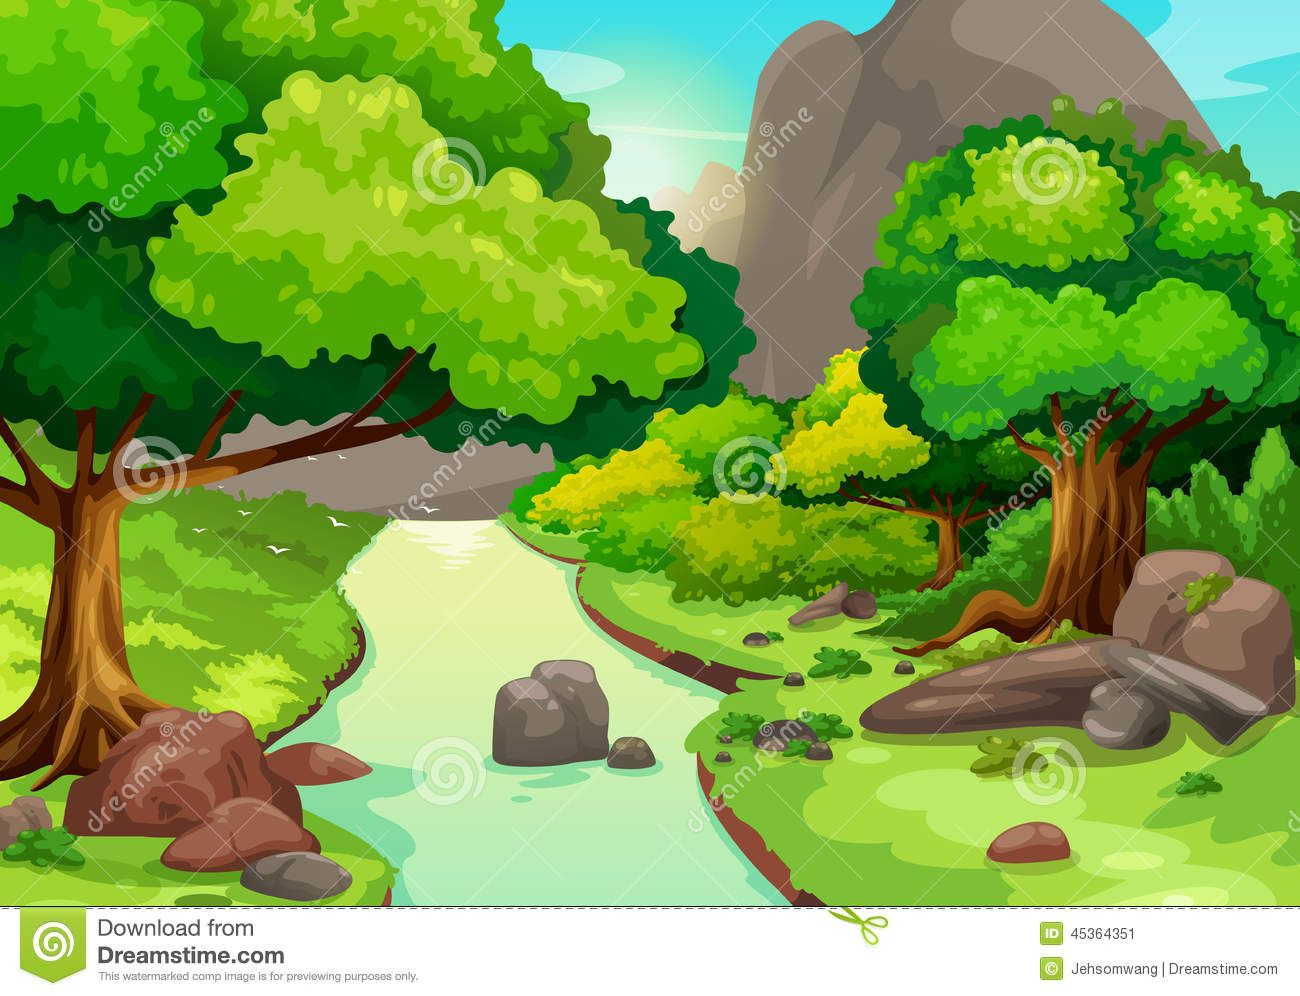 forest clipart backround 326 so a lesn kresby pinterest rh pinterest com forest clip art background forest clipart backgrounds